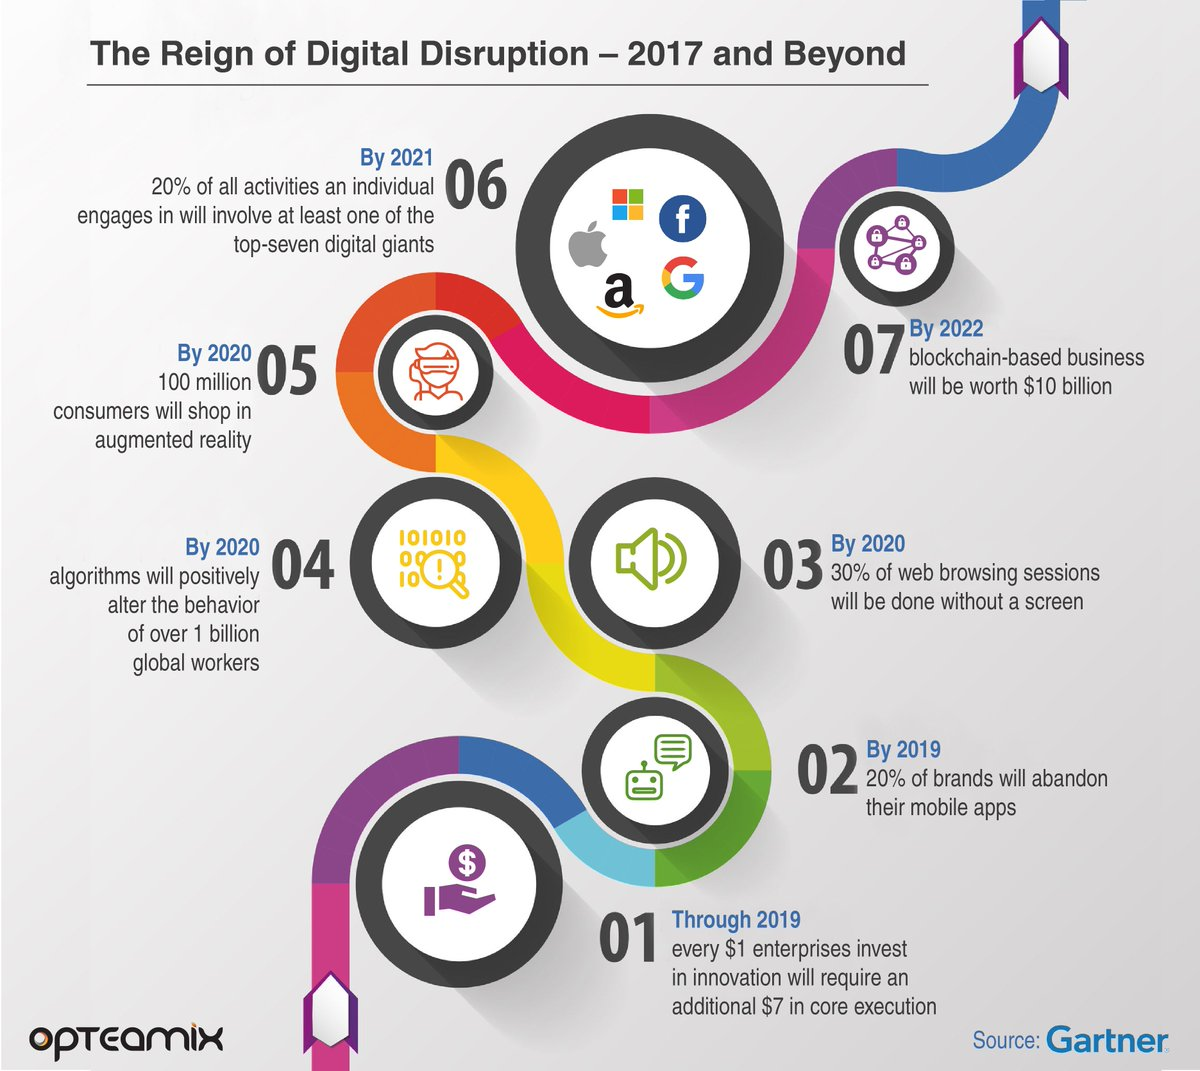 [Infographic] The Reign of #Digital #Disruption   http:// bit.ly/2tax2ki  &nbsp;       #banking #fintech #bigdata #blockchain RT @JimMarous<br>http://pic.twitter.com/WH4xQ2A9gh